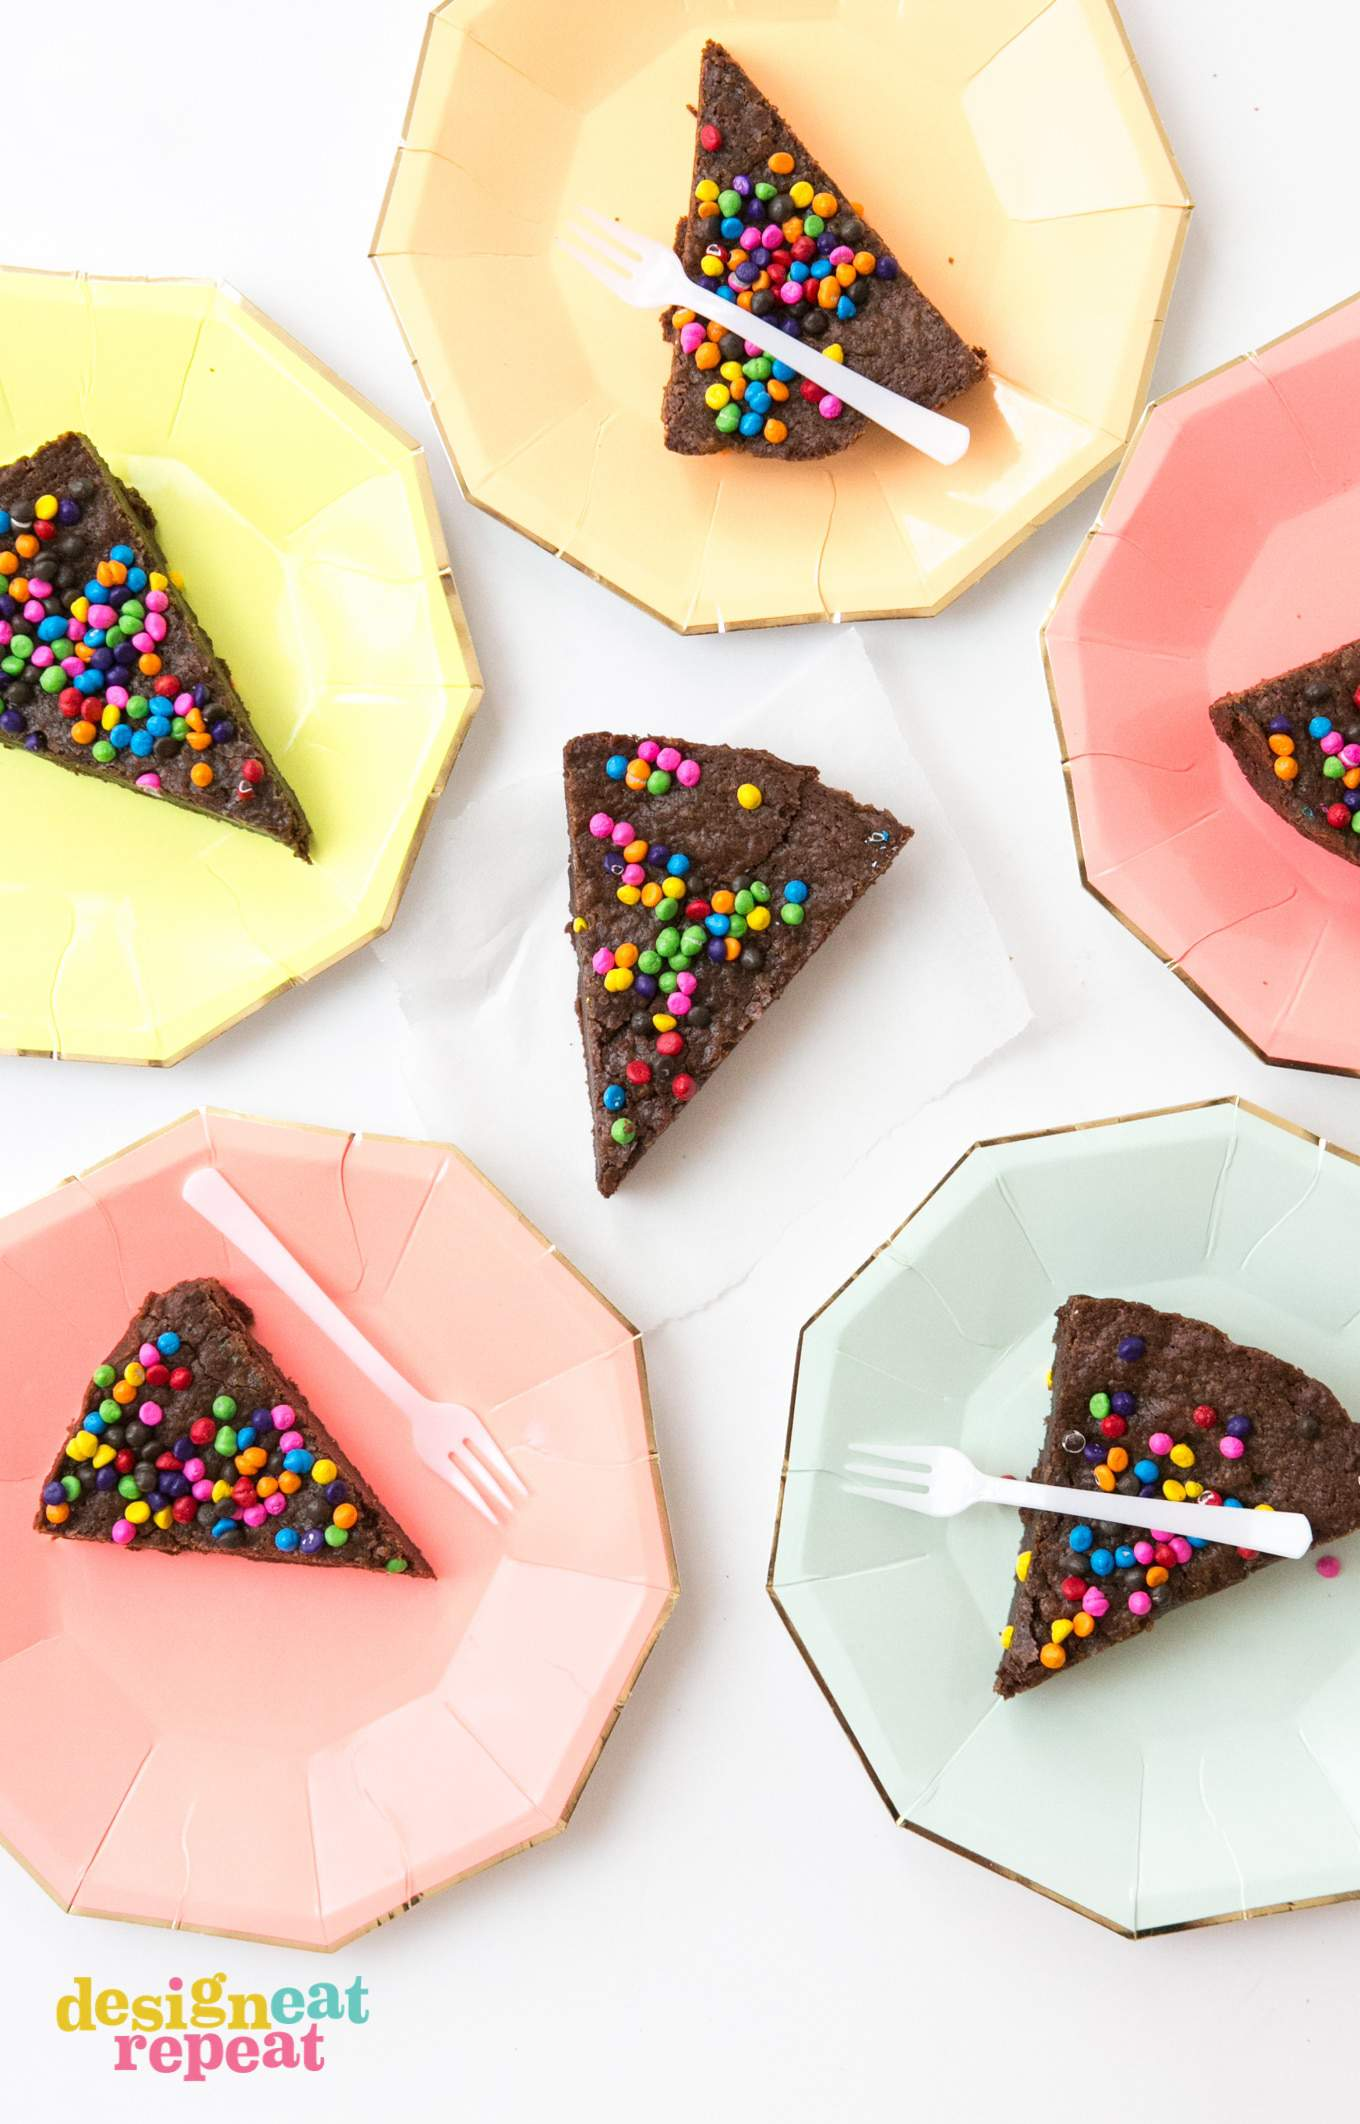 Slices of brownie pie on colored paper plates.